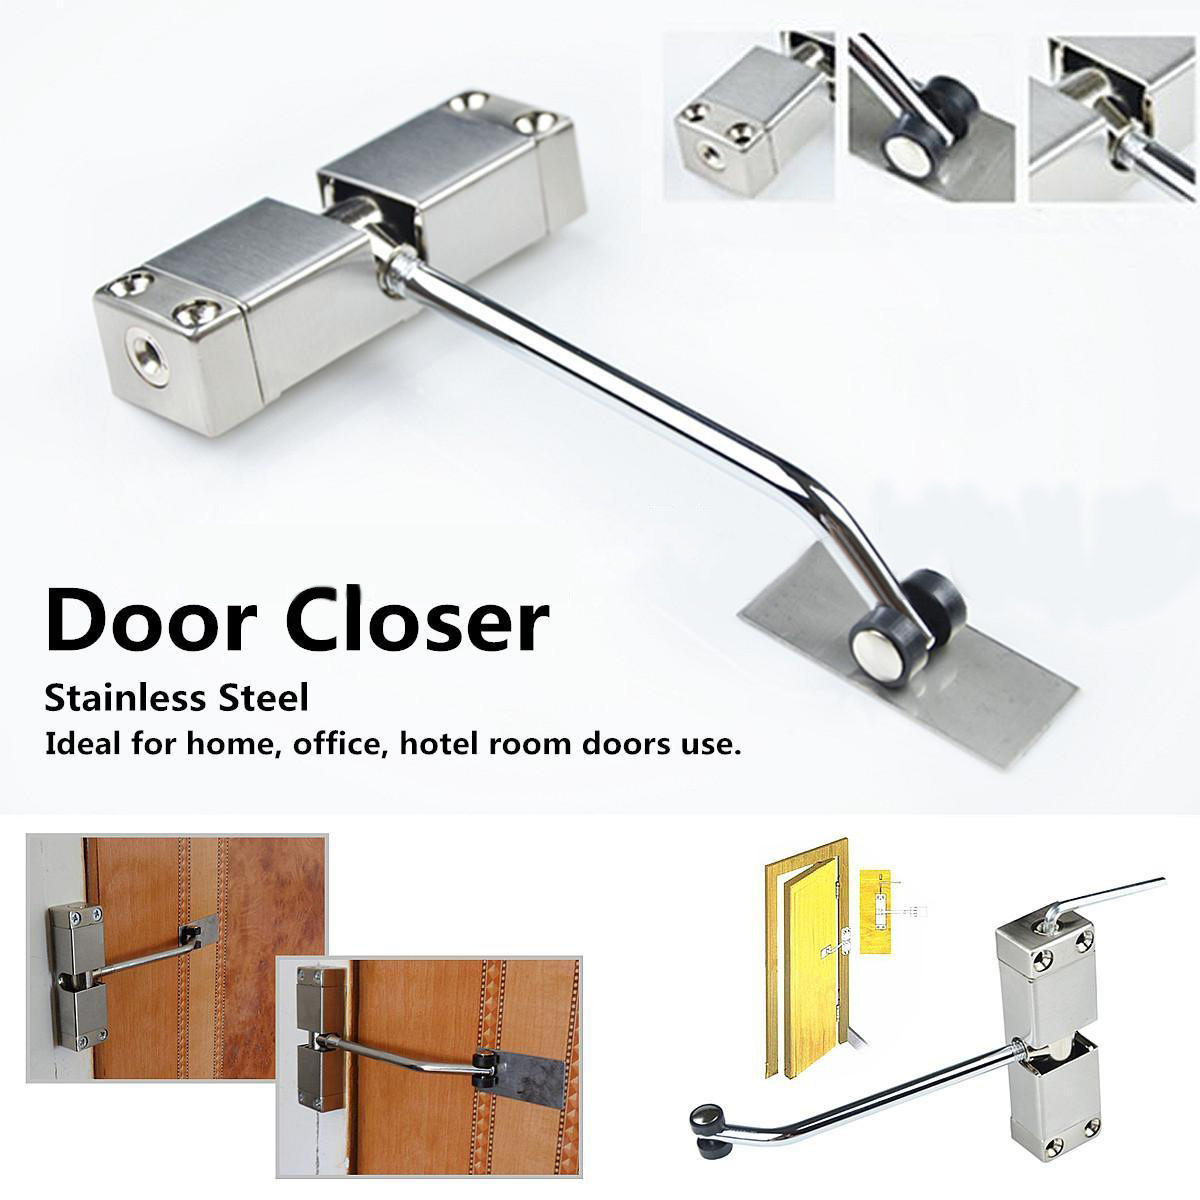 1pc Automatic Mounted Spring Door Closer Stainless Steel 175 degrees Adjustable Surface Door Closer 160x96x20mm Door Closers 1pc automatic mounted spring door closer stainless steel adjustable surface door closer 160x96x20mm page 7